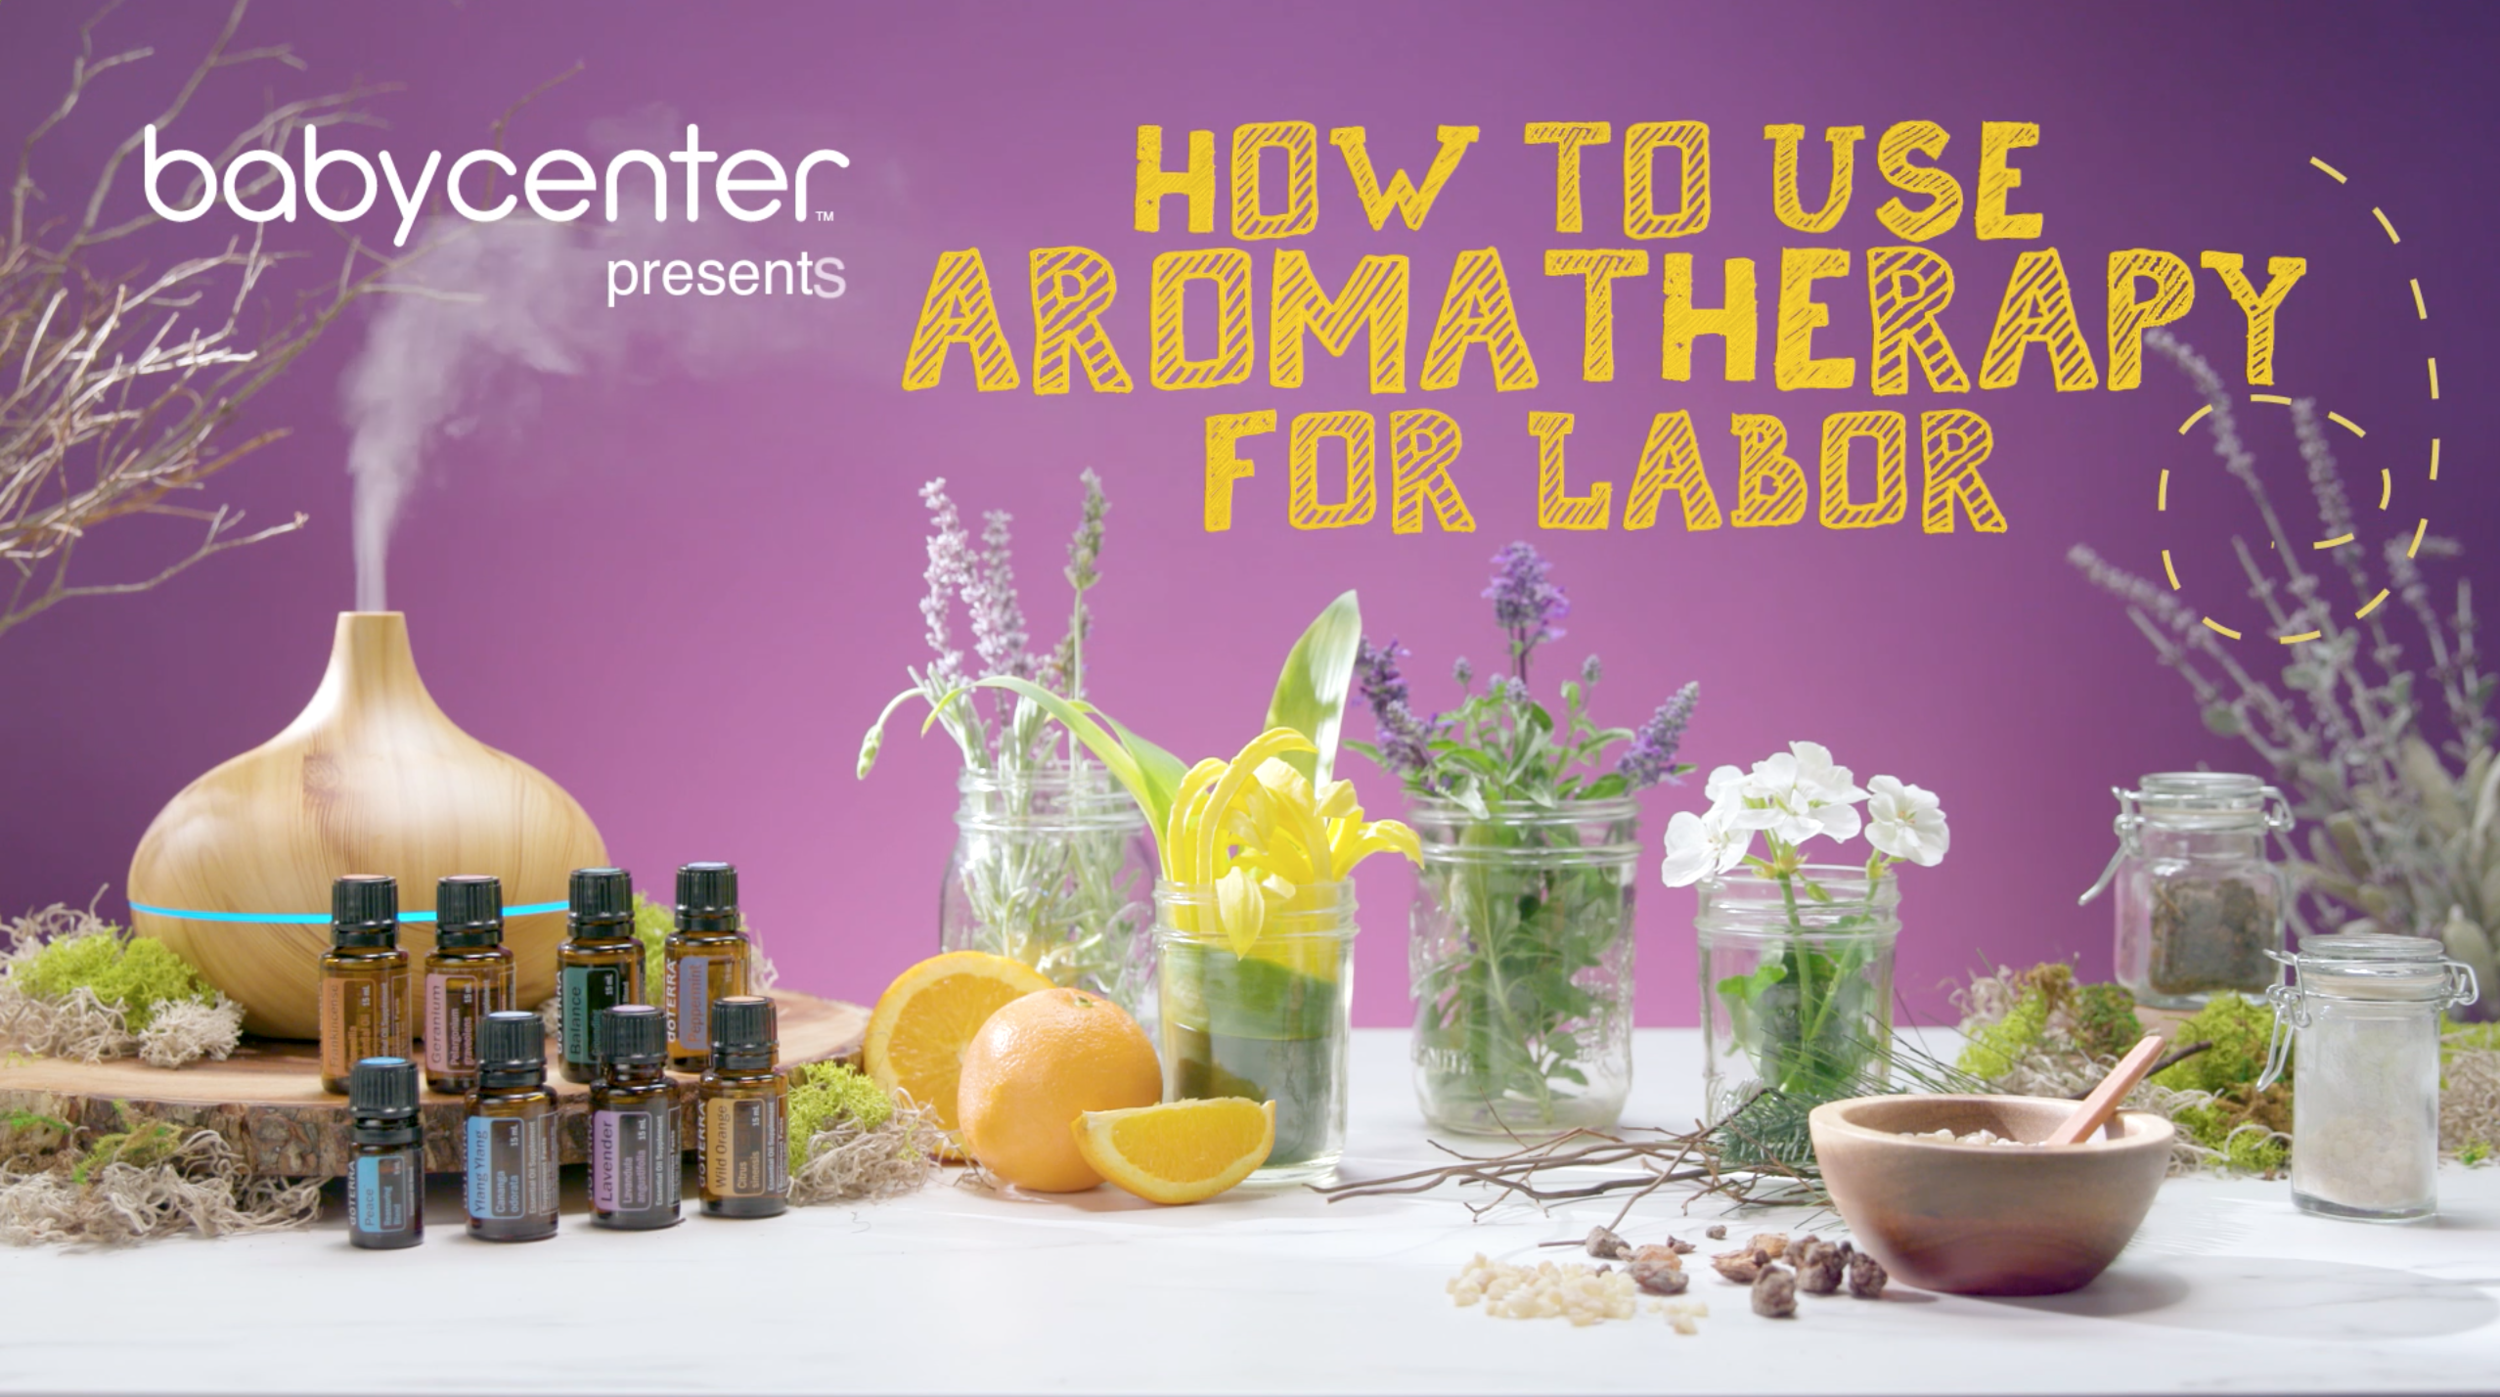 HOW TO USE AROMATHERAPY DURING LABOR